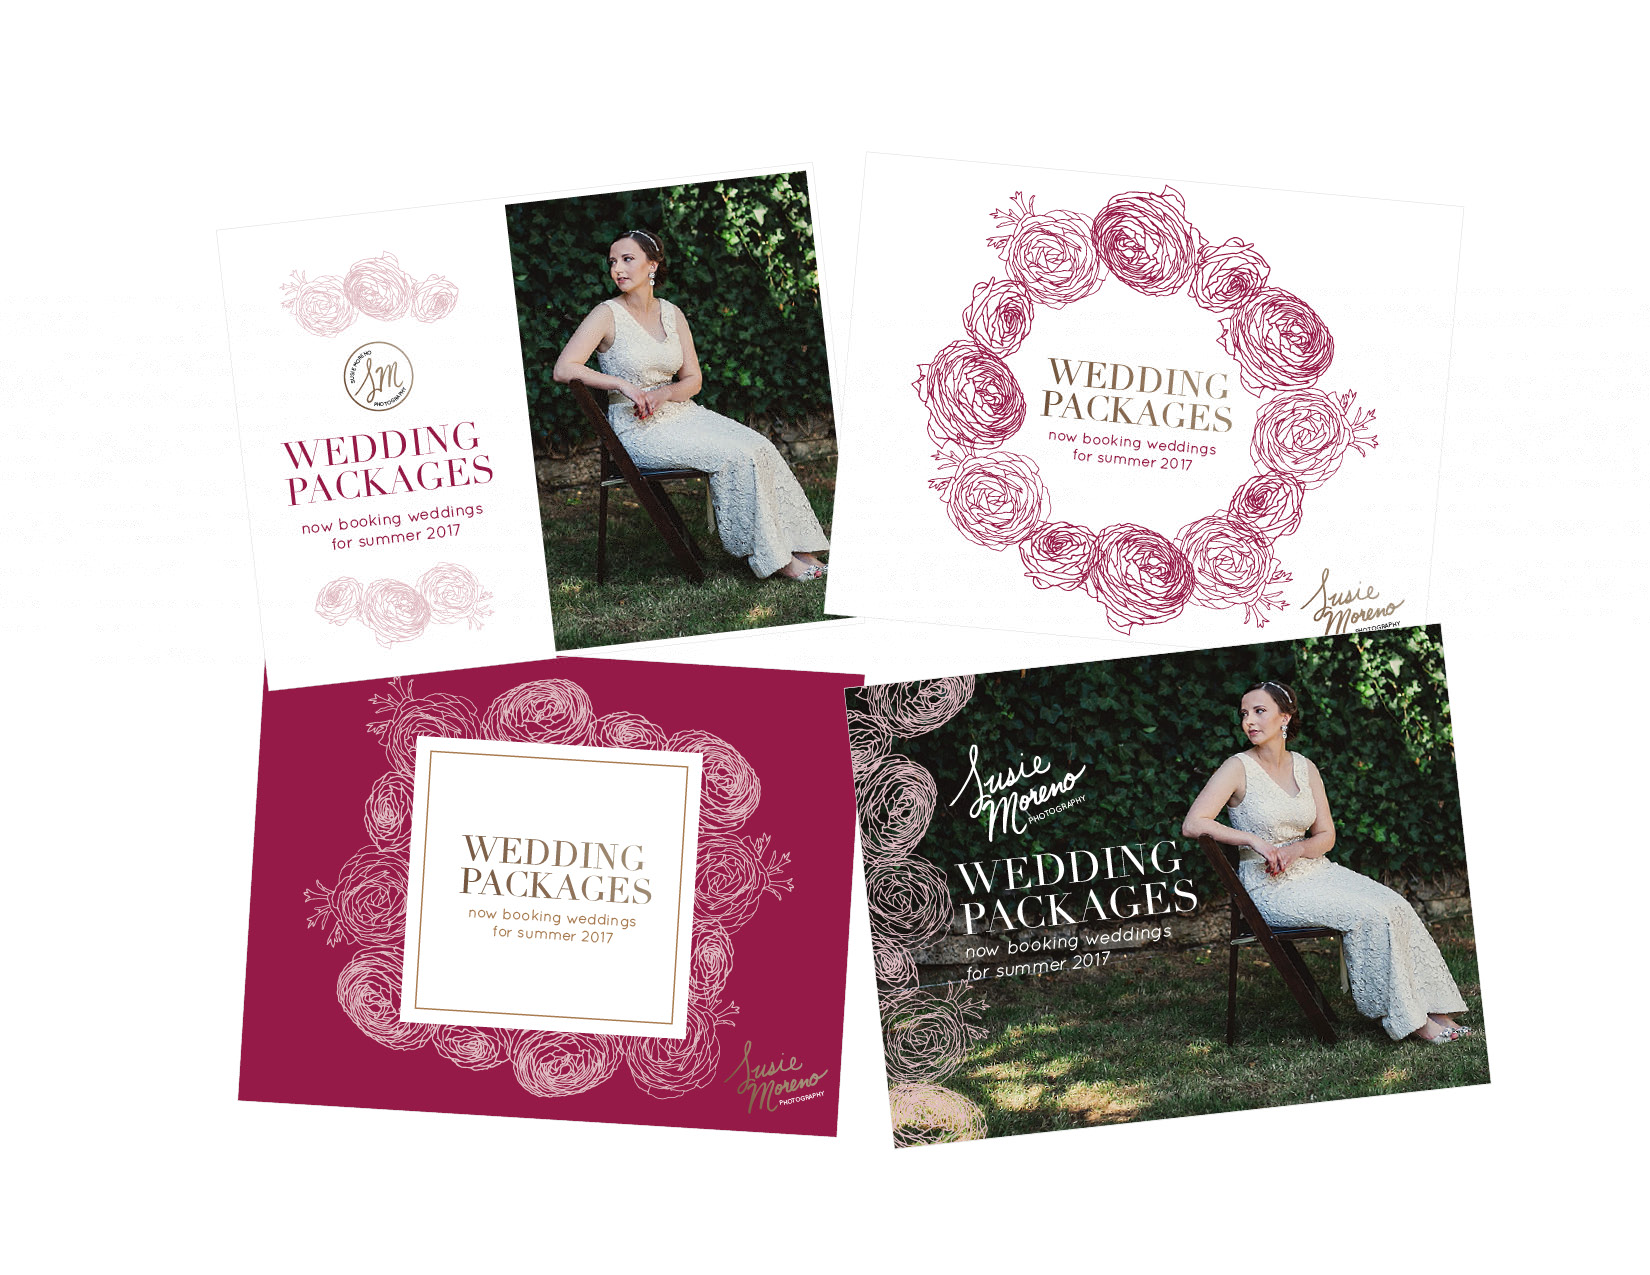 Susie Moreno Photography Case Study Layout Samples